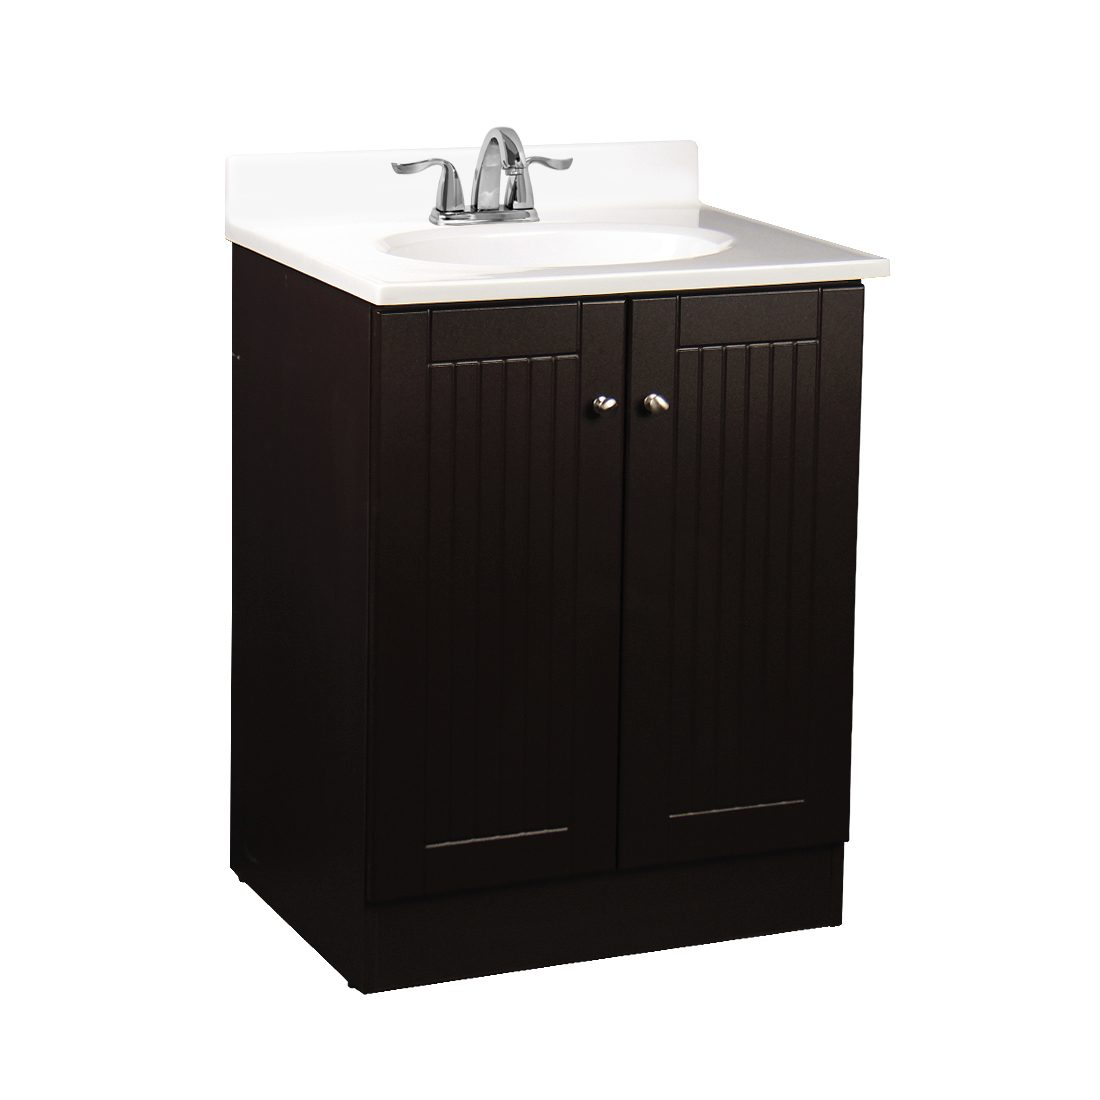 Tivoli 25inch Vanity With Poly Marble Basin Chocolate Front View